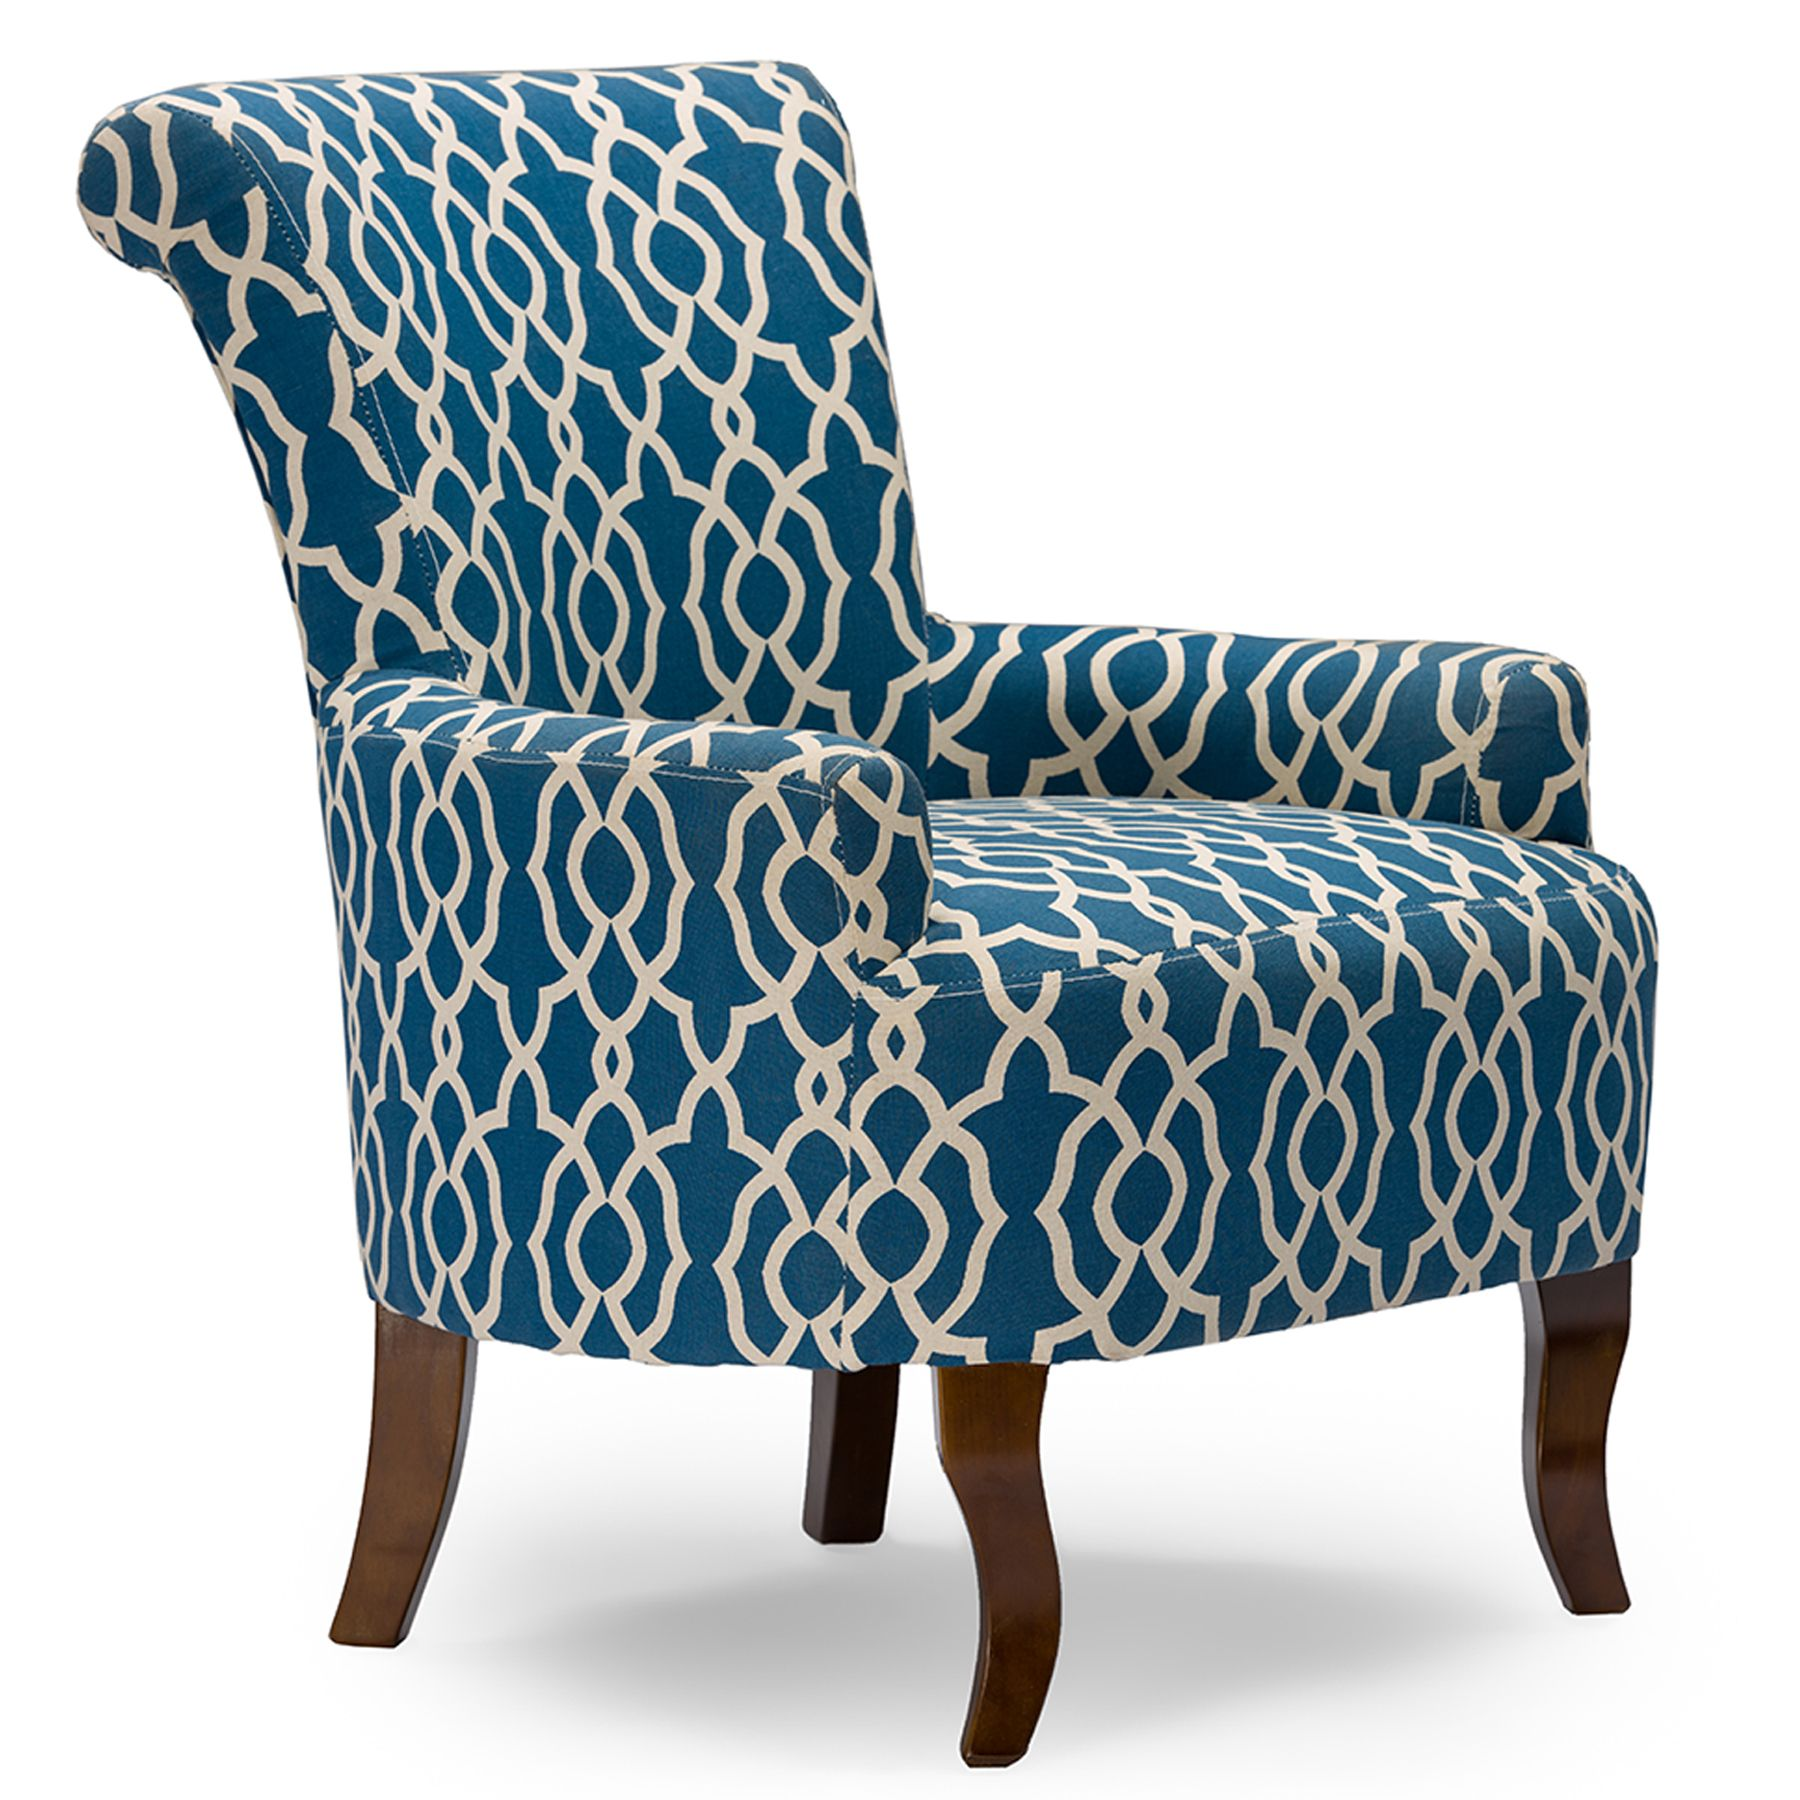 Sears Accent Chairs Sears Online Chairs Blue Accent Chairs Fabric Armchairs